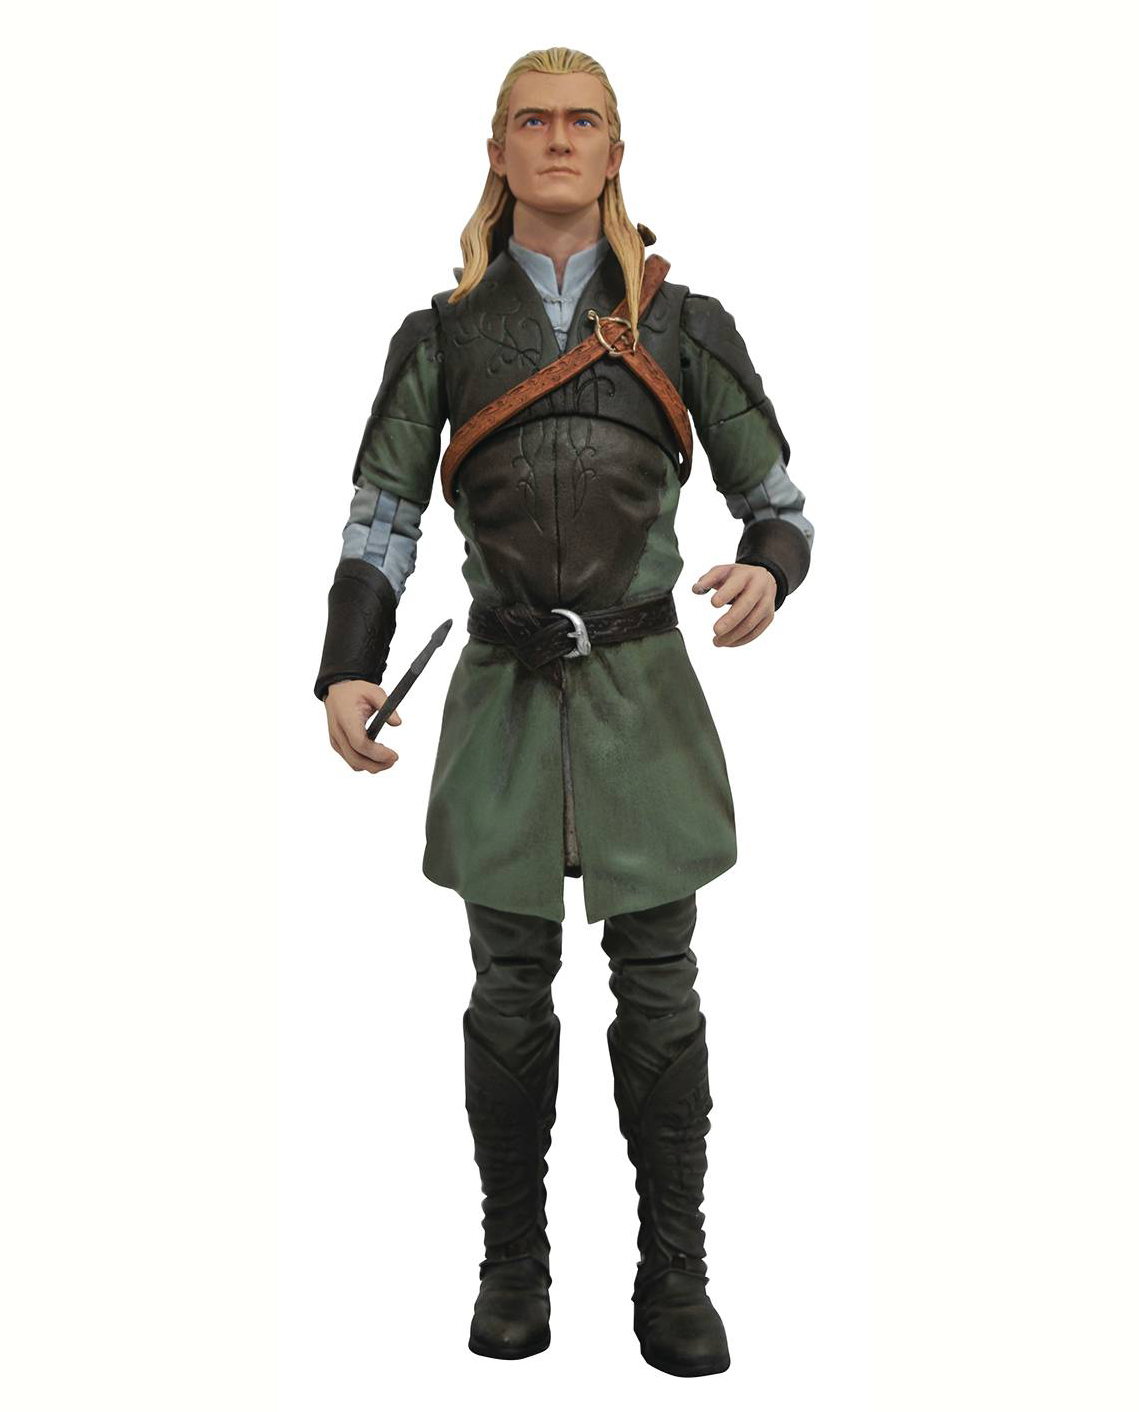 "Lord of the Rings 7"" Action Figure: Series 1 - Legolas"